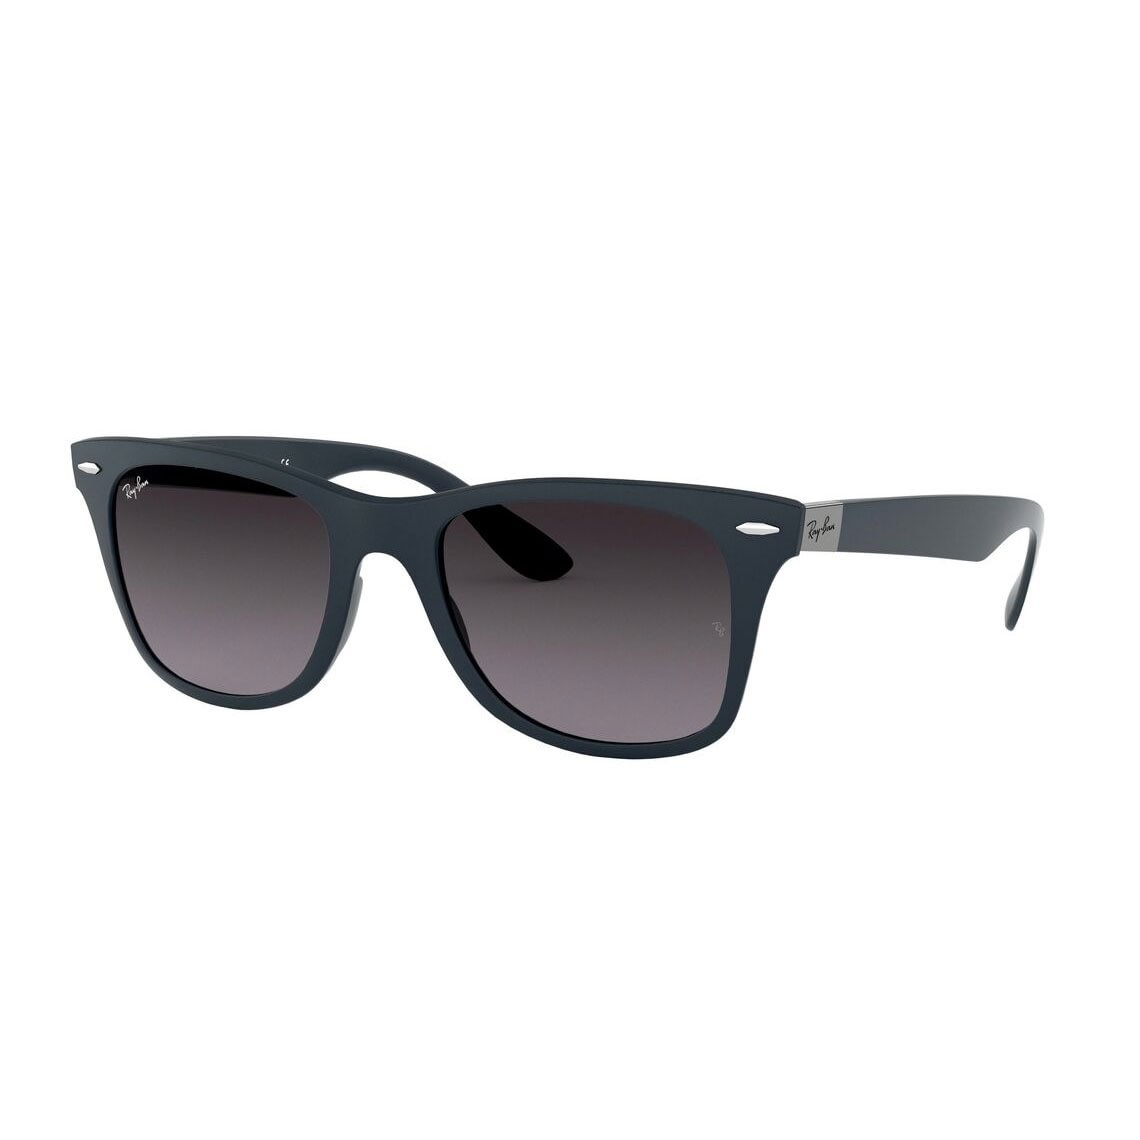 Ray-Ban Wayfarer Liteforce RB4195 63318G 52